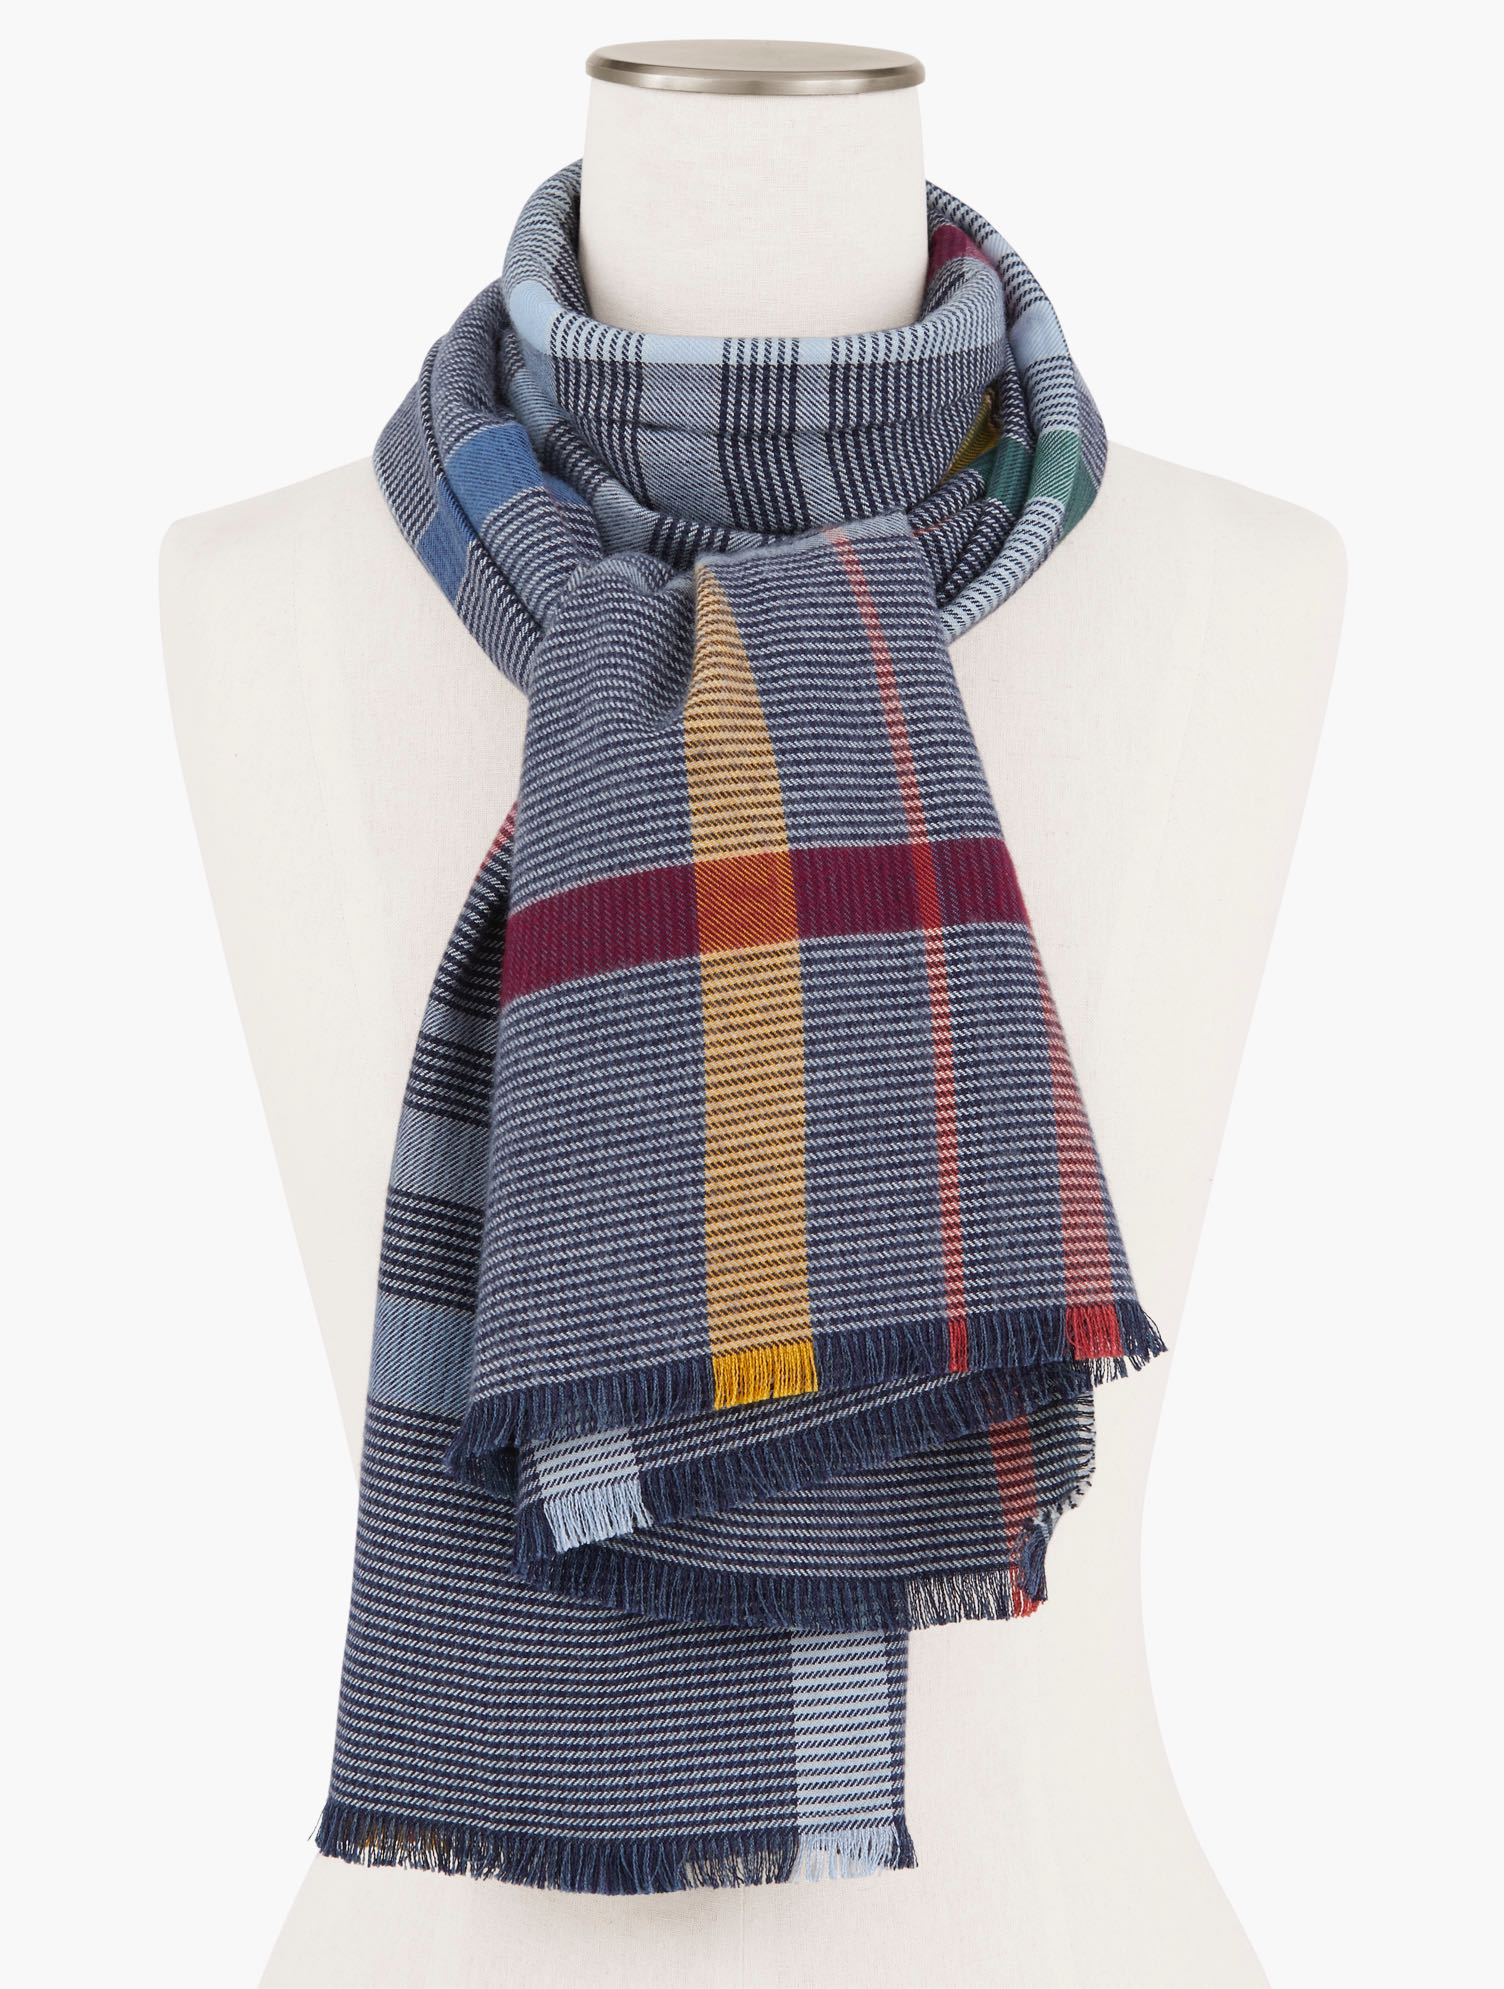 Wrap yourself in cozy warmth with our plaid oblong scarf. The perfect layer when there\\\'s a chill in the air. Features Oblong ScarfImported Fit: 27x72 inches Material: 54% Cotton, 46% Viscose Care: Hand Wash, Line Dry Cozy Plaid Oblong Scarf - Blue - 001 - 100% Cotton Talbots